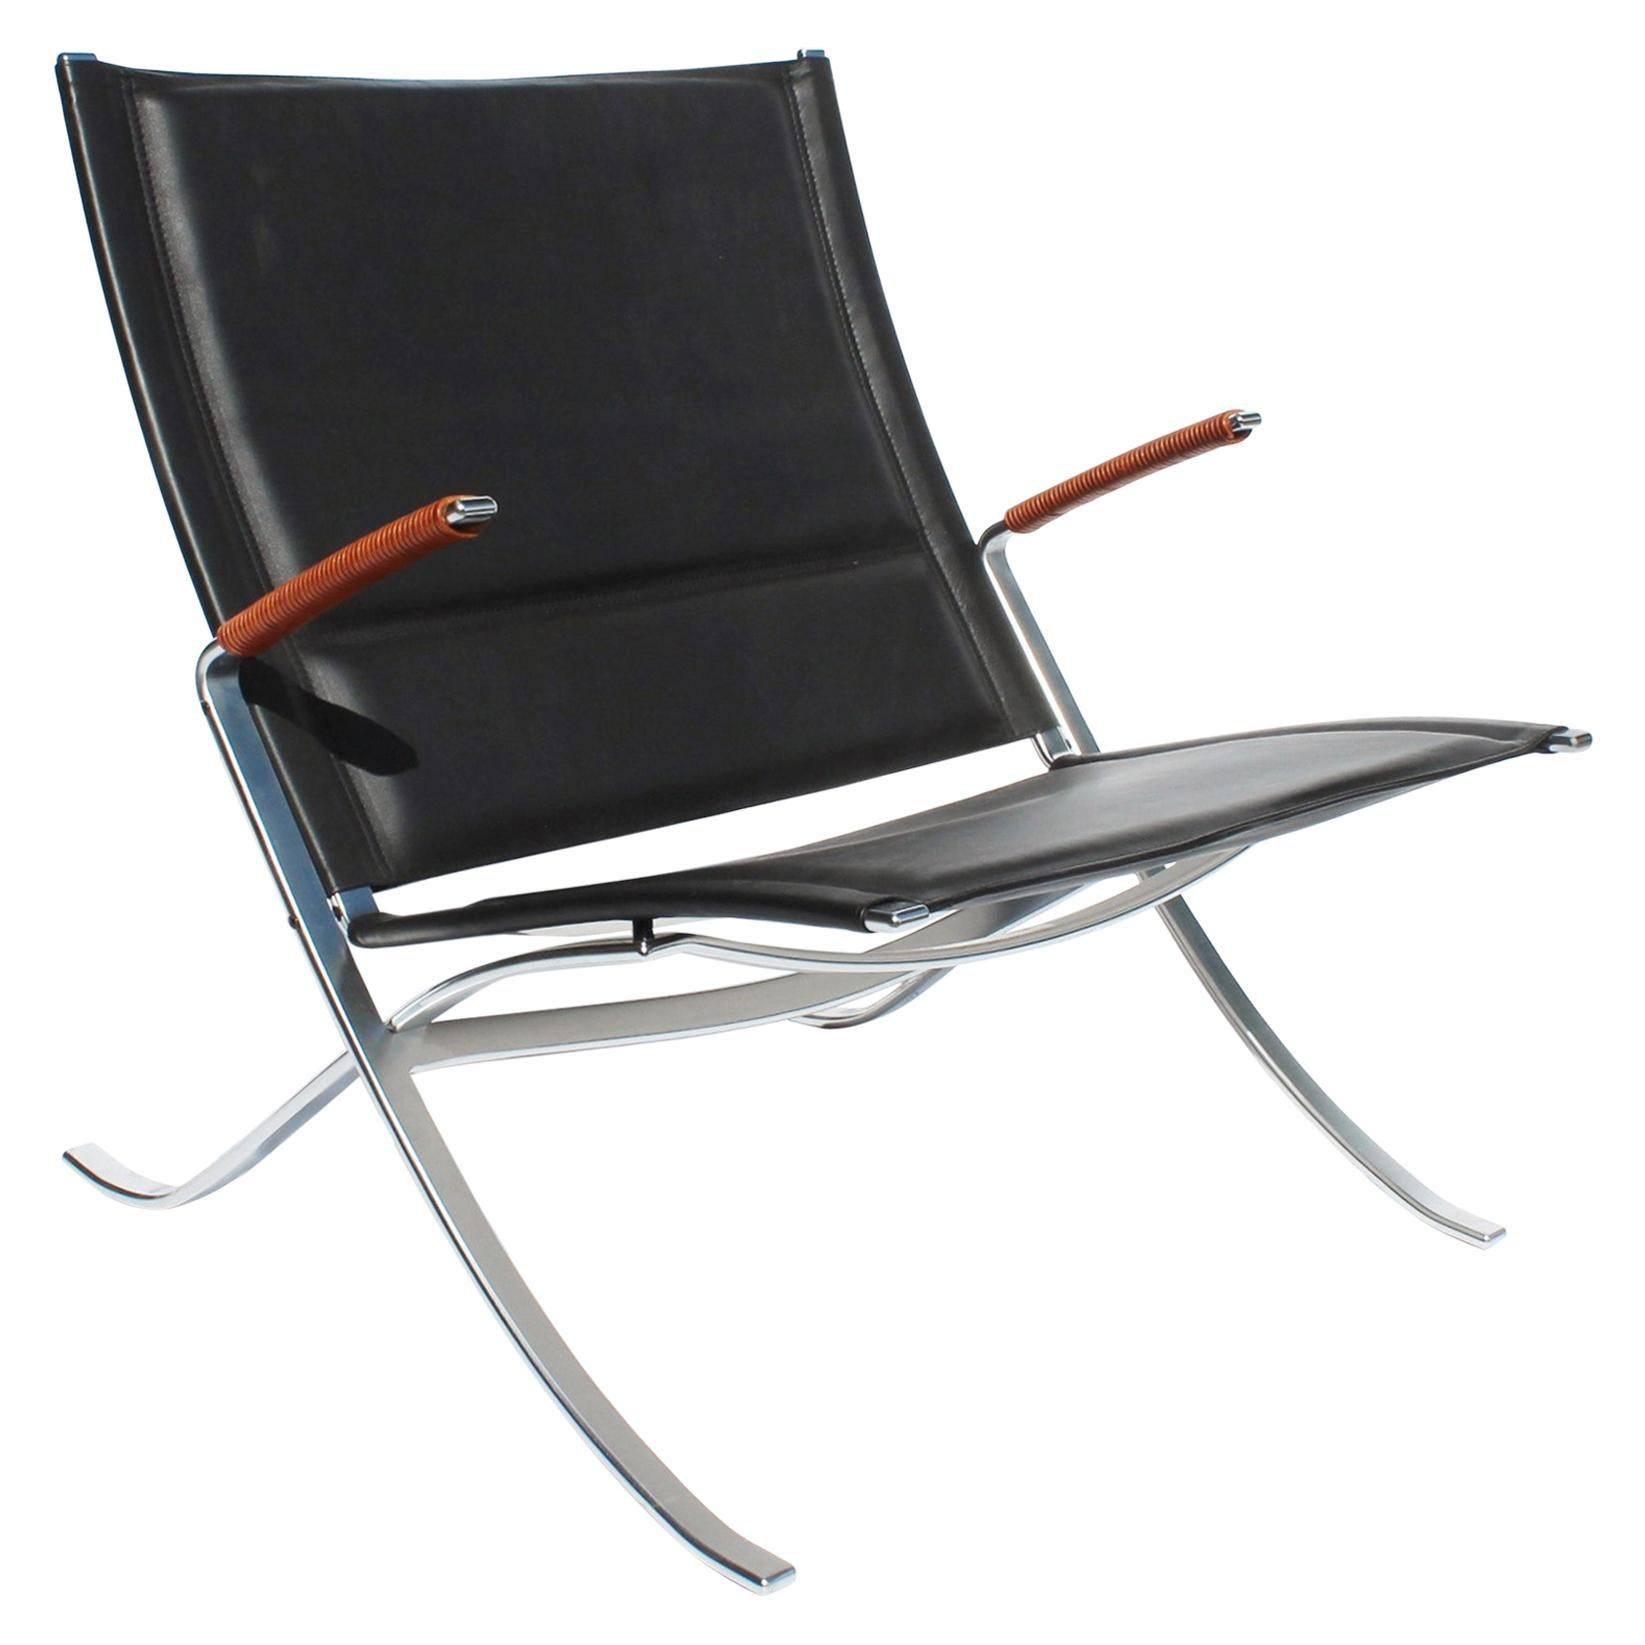 Easy Chair, Model FK82, X-Chair, by Preben Fabricius and Jørgen Kastholm